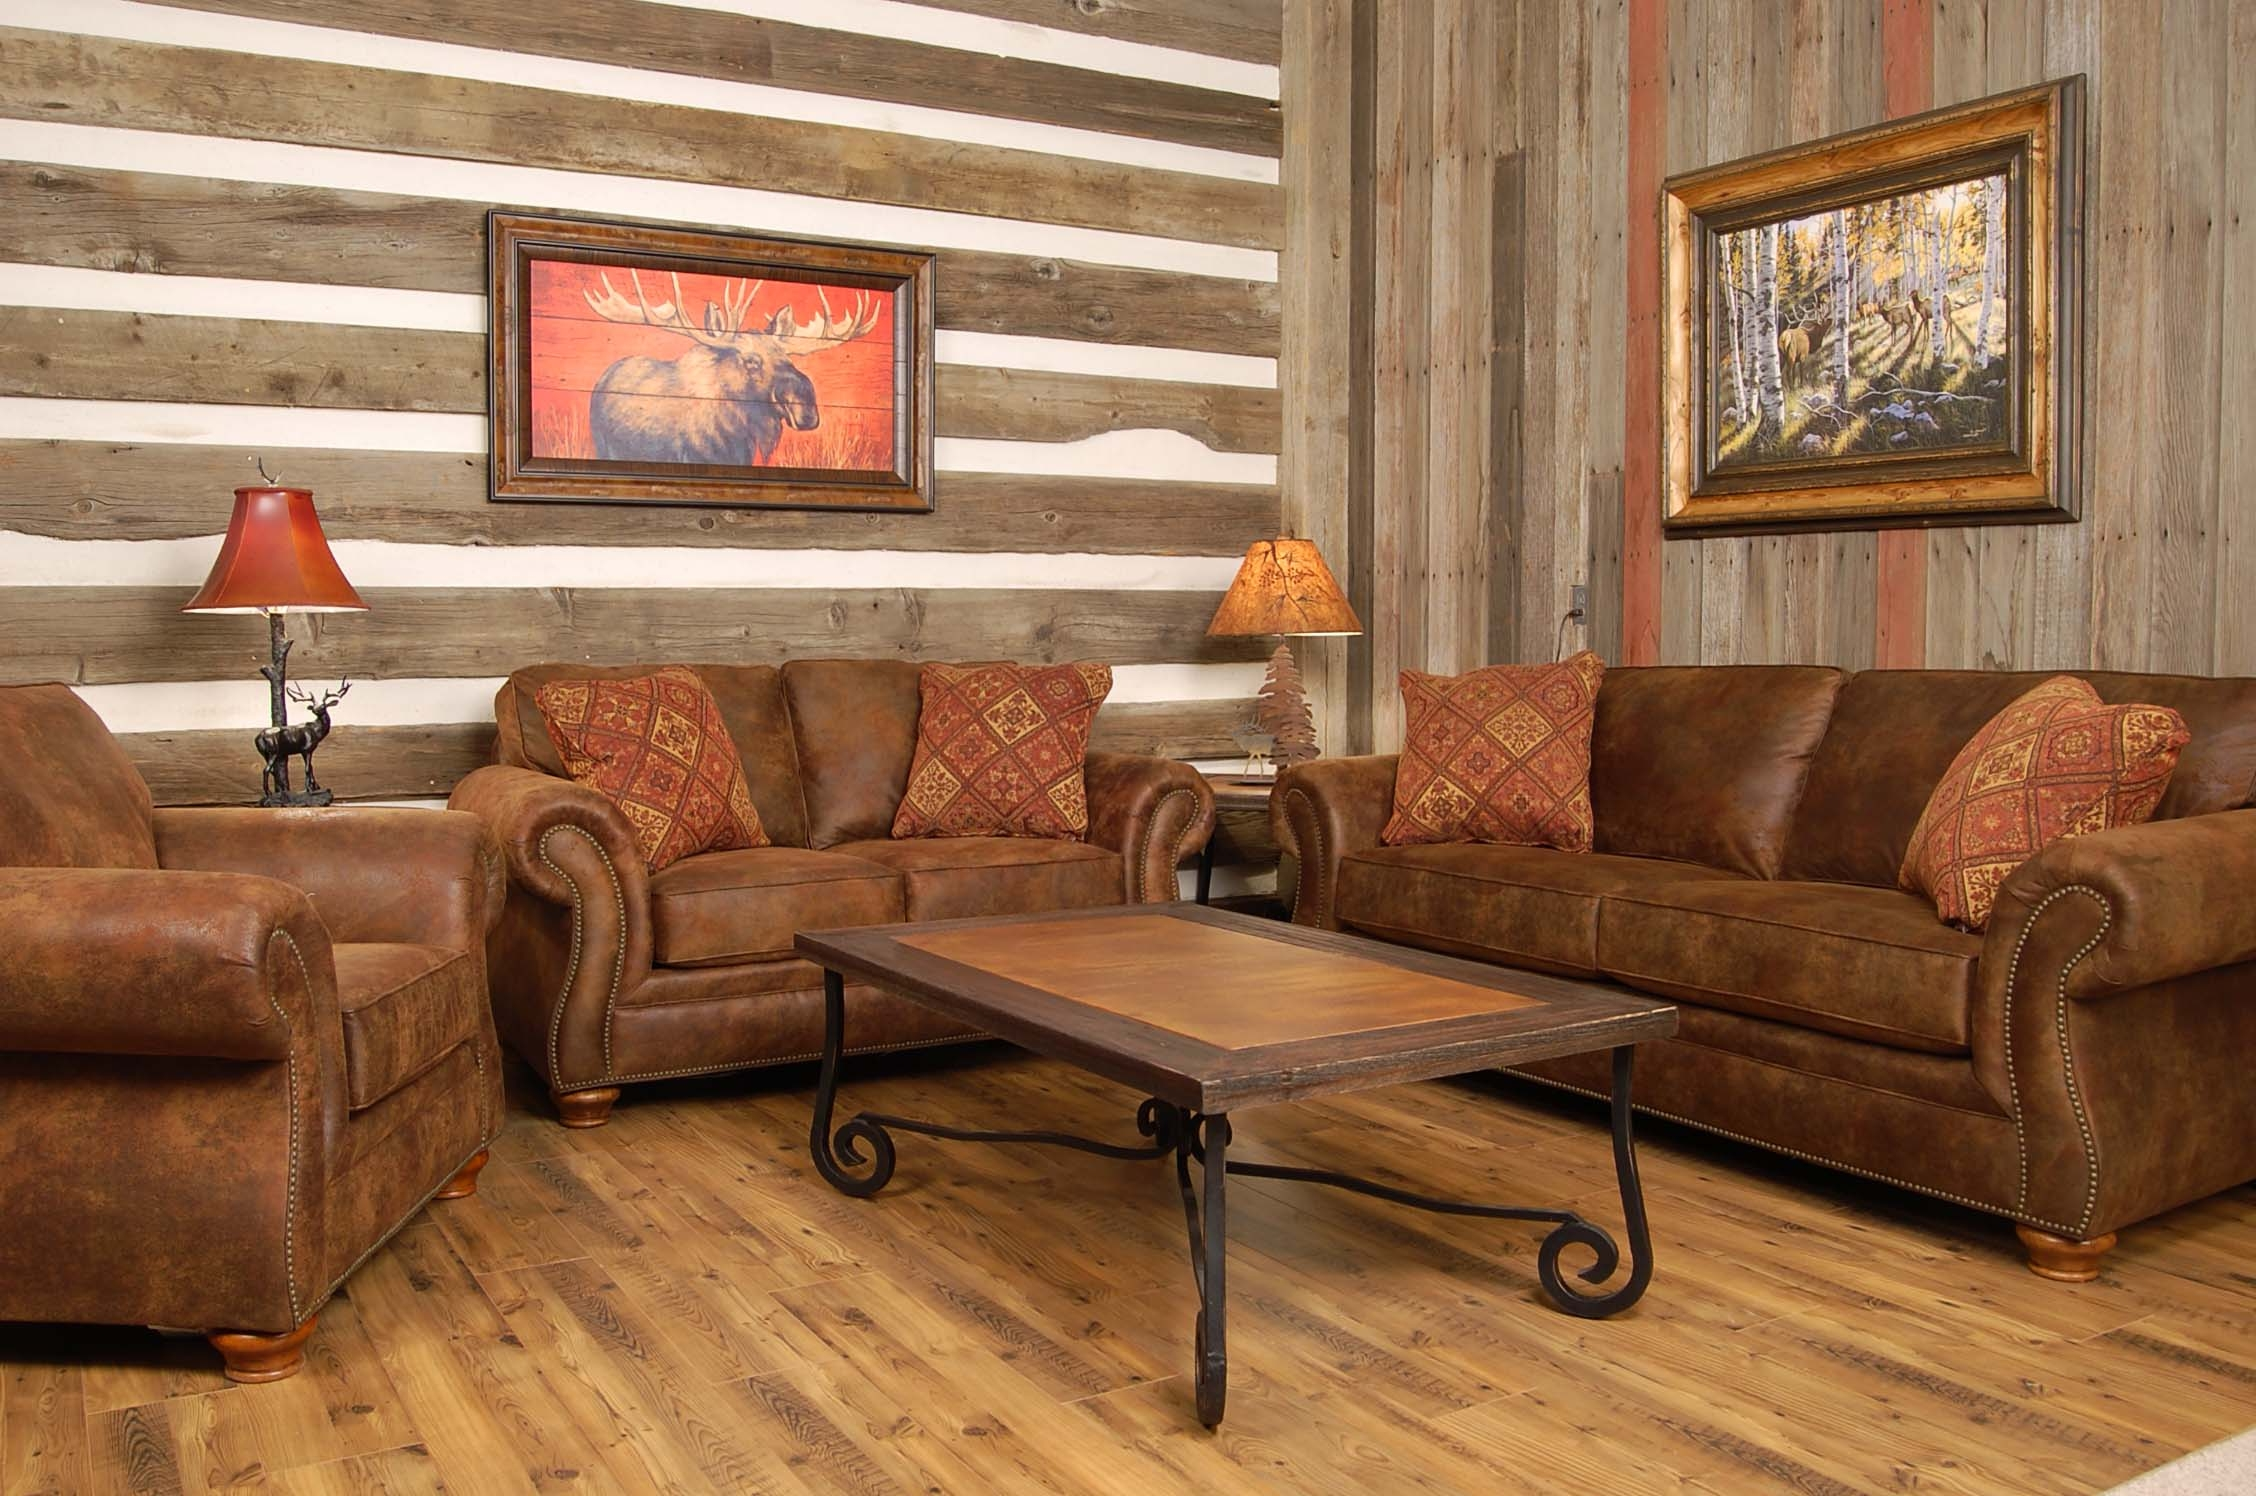 Beautiful rustic living room furniture roselawnlutheranbest rustic living room set  pictures room design kdyacfh